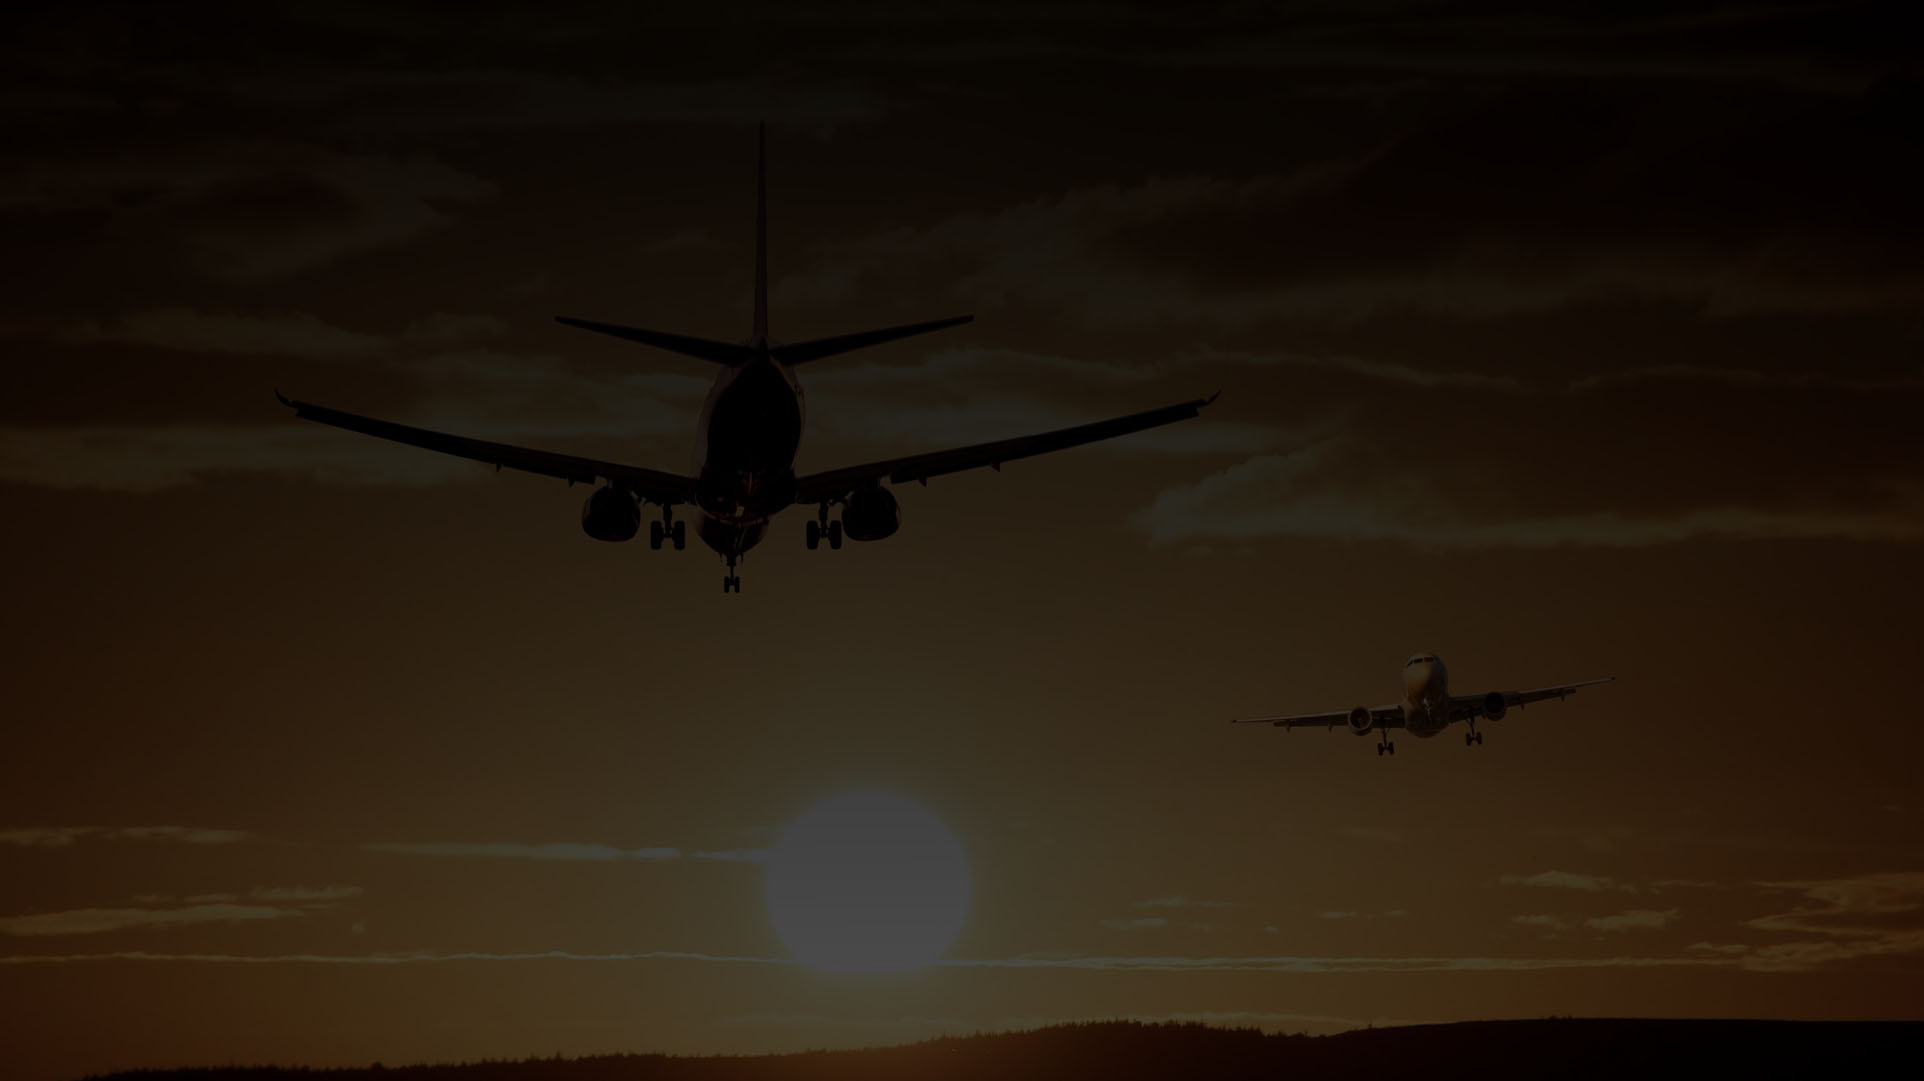 Airplane sillhouette- FAME